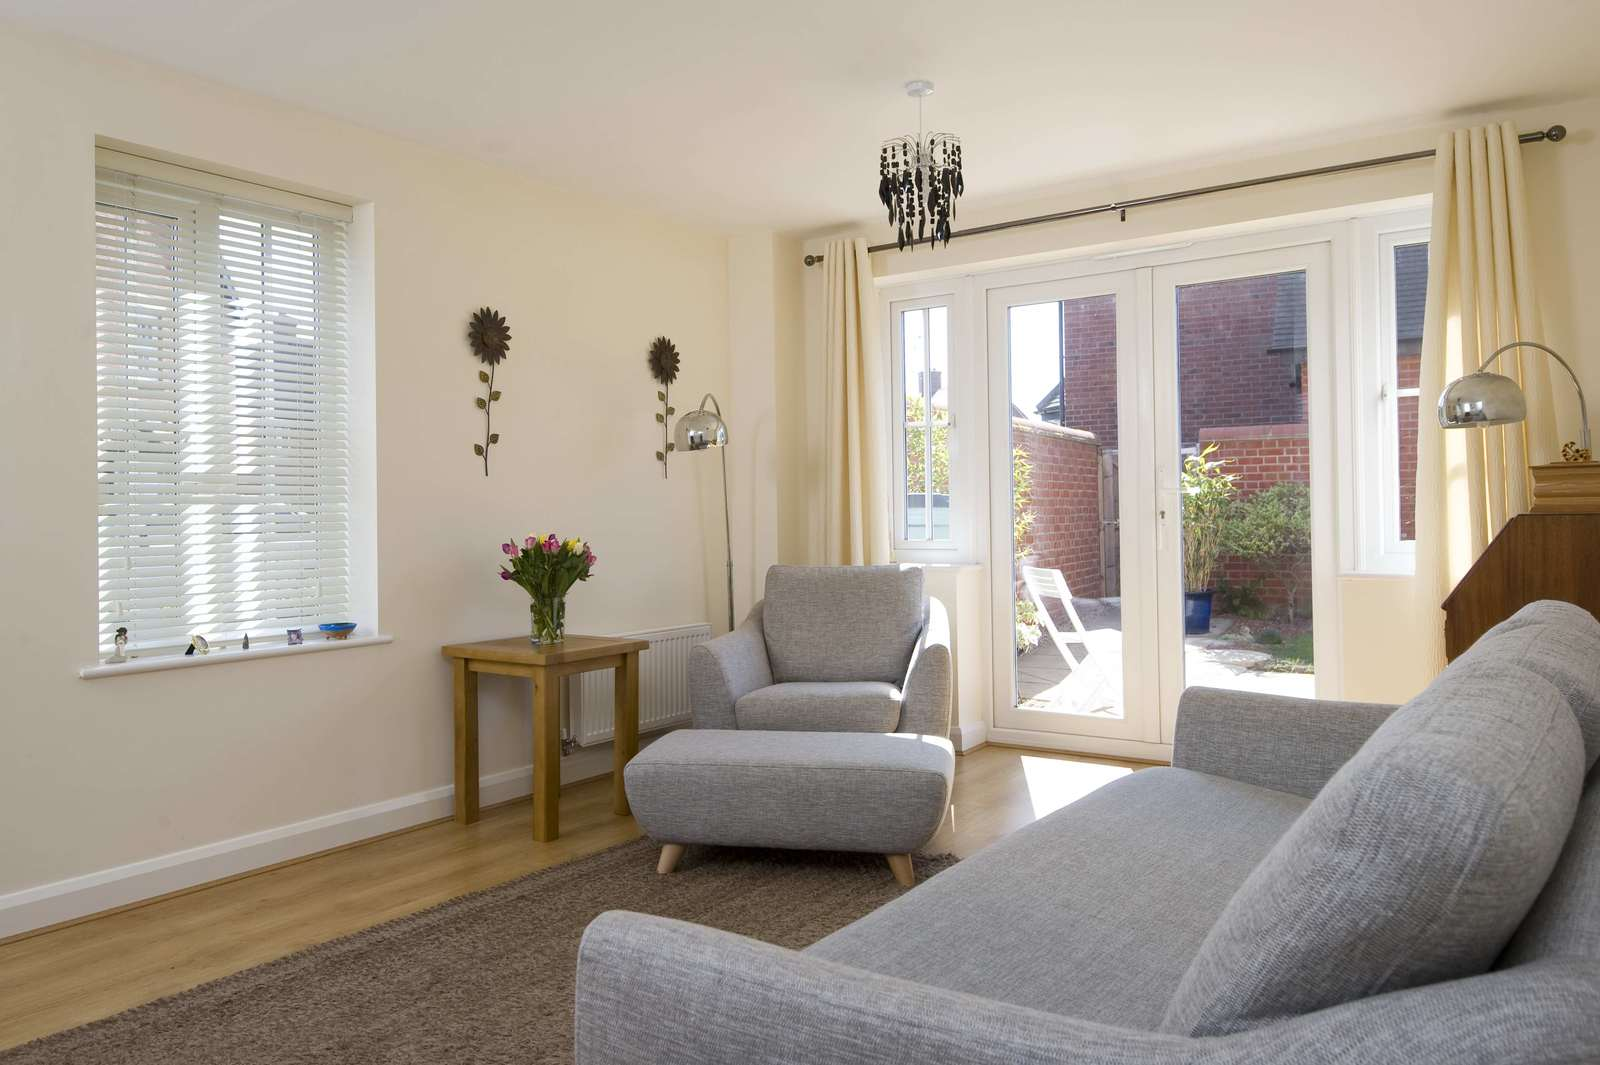 3 bed house for sale in Woodpecker Close, Great Barford  - Property Image 4